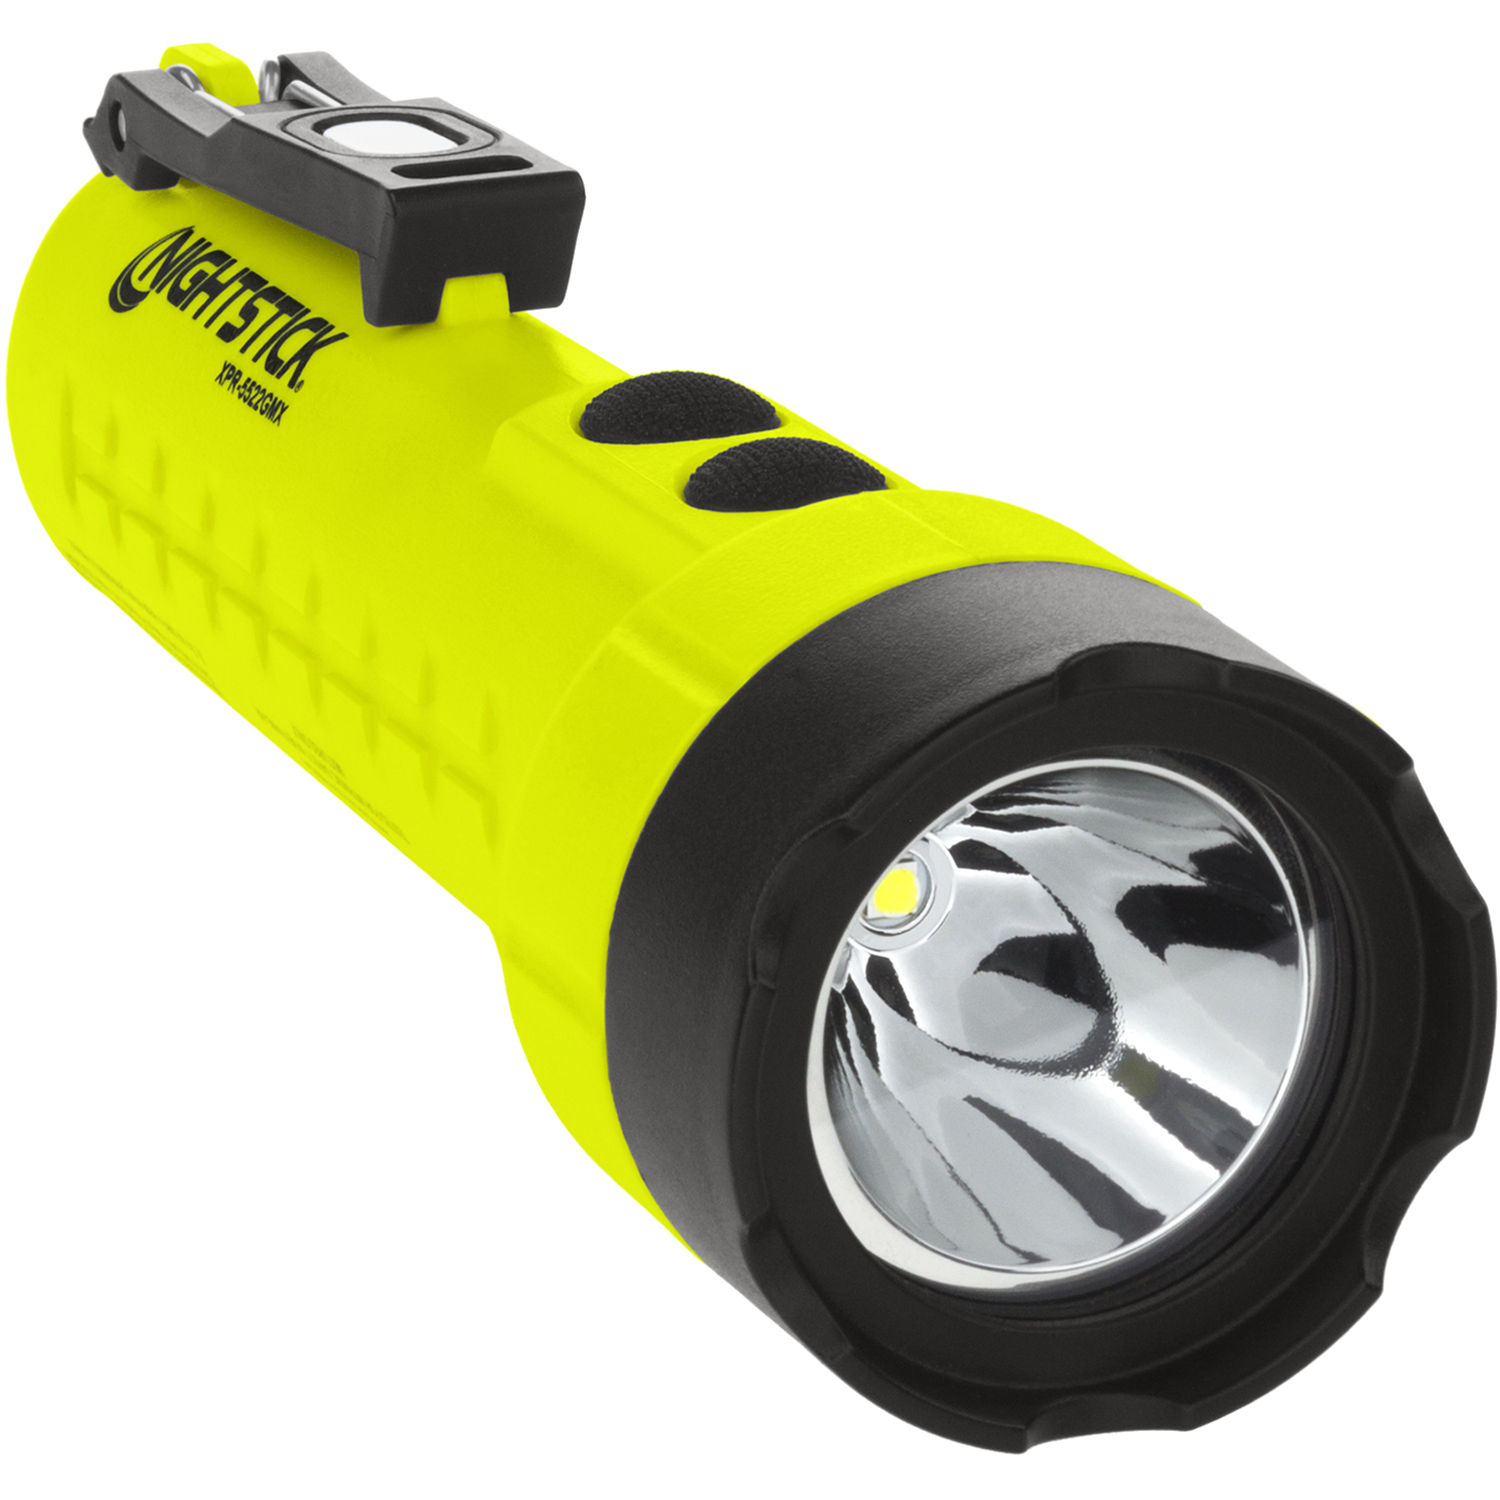 nightstick xpr 5522gmx intrinsically safe permissible rechargeable dual light flashlight